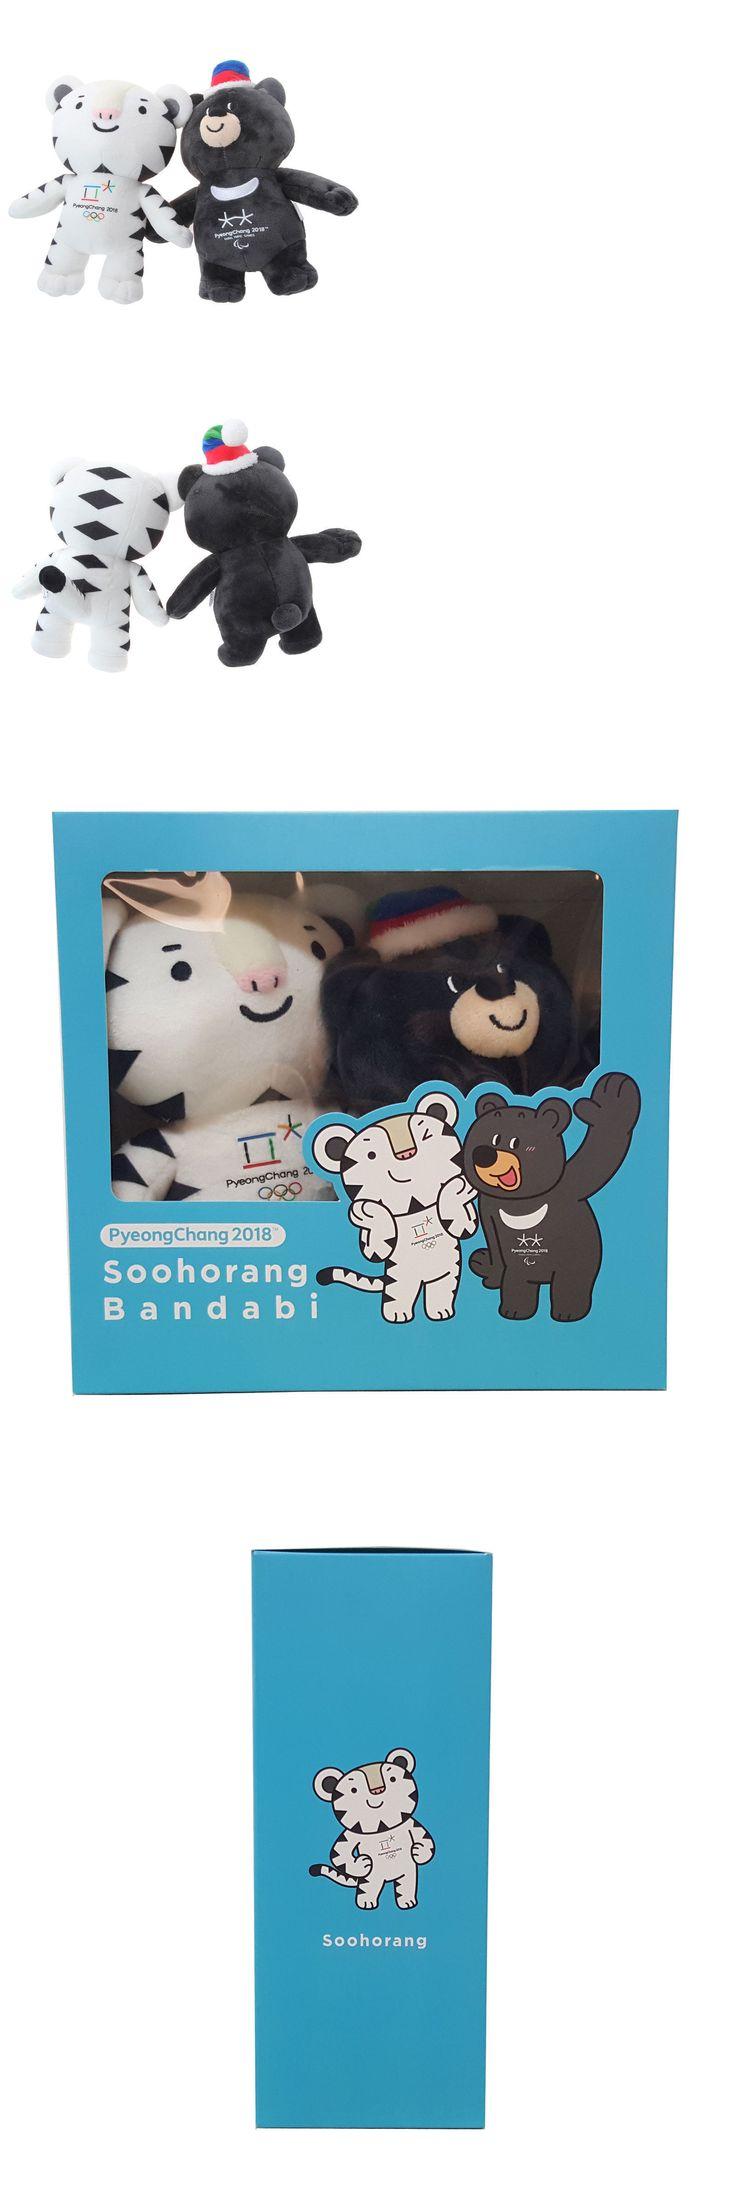 Olympics 27291: 2018 Korea Pyeongchang Winter Olympics Soohorang Bandabi Mascot Mini Doll Set -> BUY IT NOW ONLY: $43.99 on eBay!